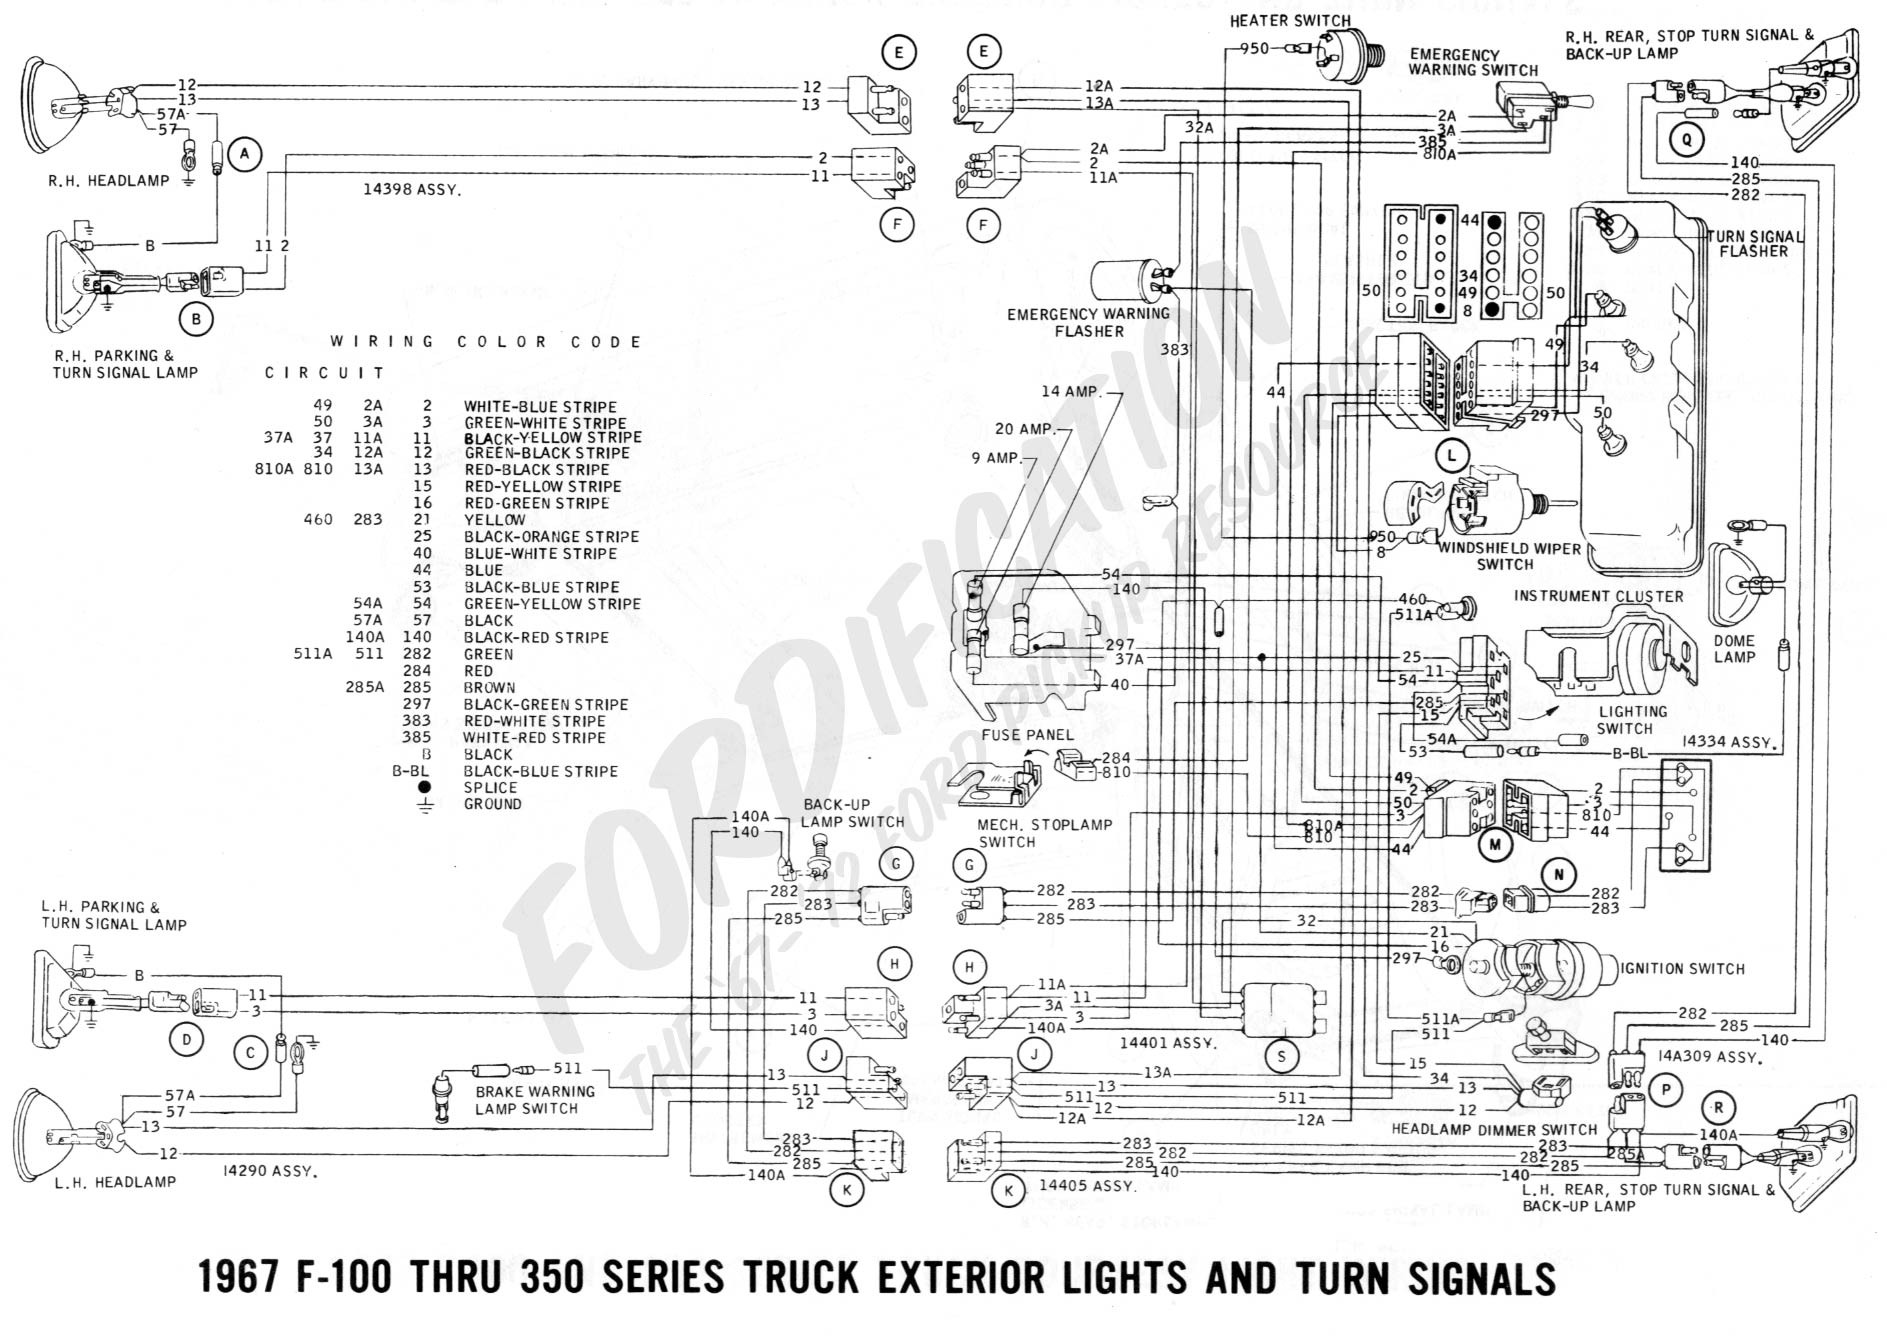 1966 ford f100 wiring diagram wiring diagrams clicks rh 1 qqq liquid cactus de 1966 ford bronco alternator wiring diagram 1966 ford mustang alternator wiring